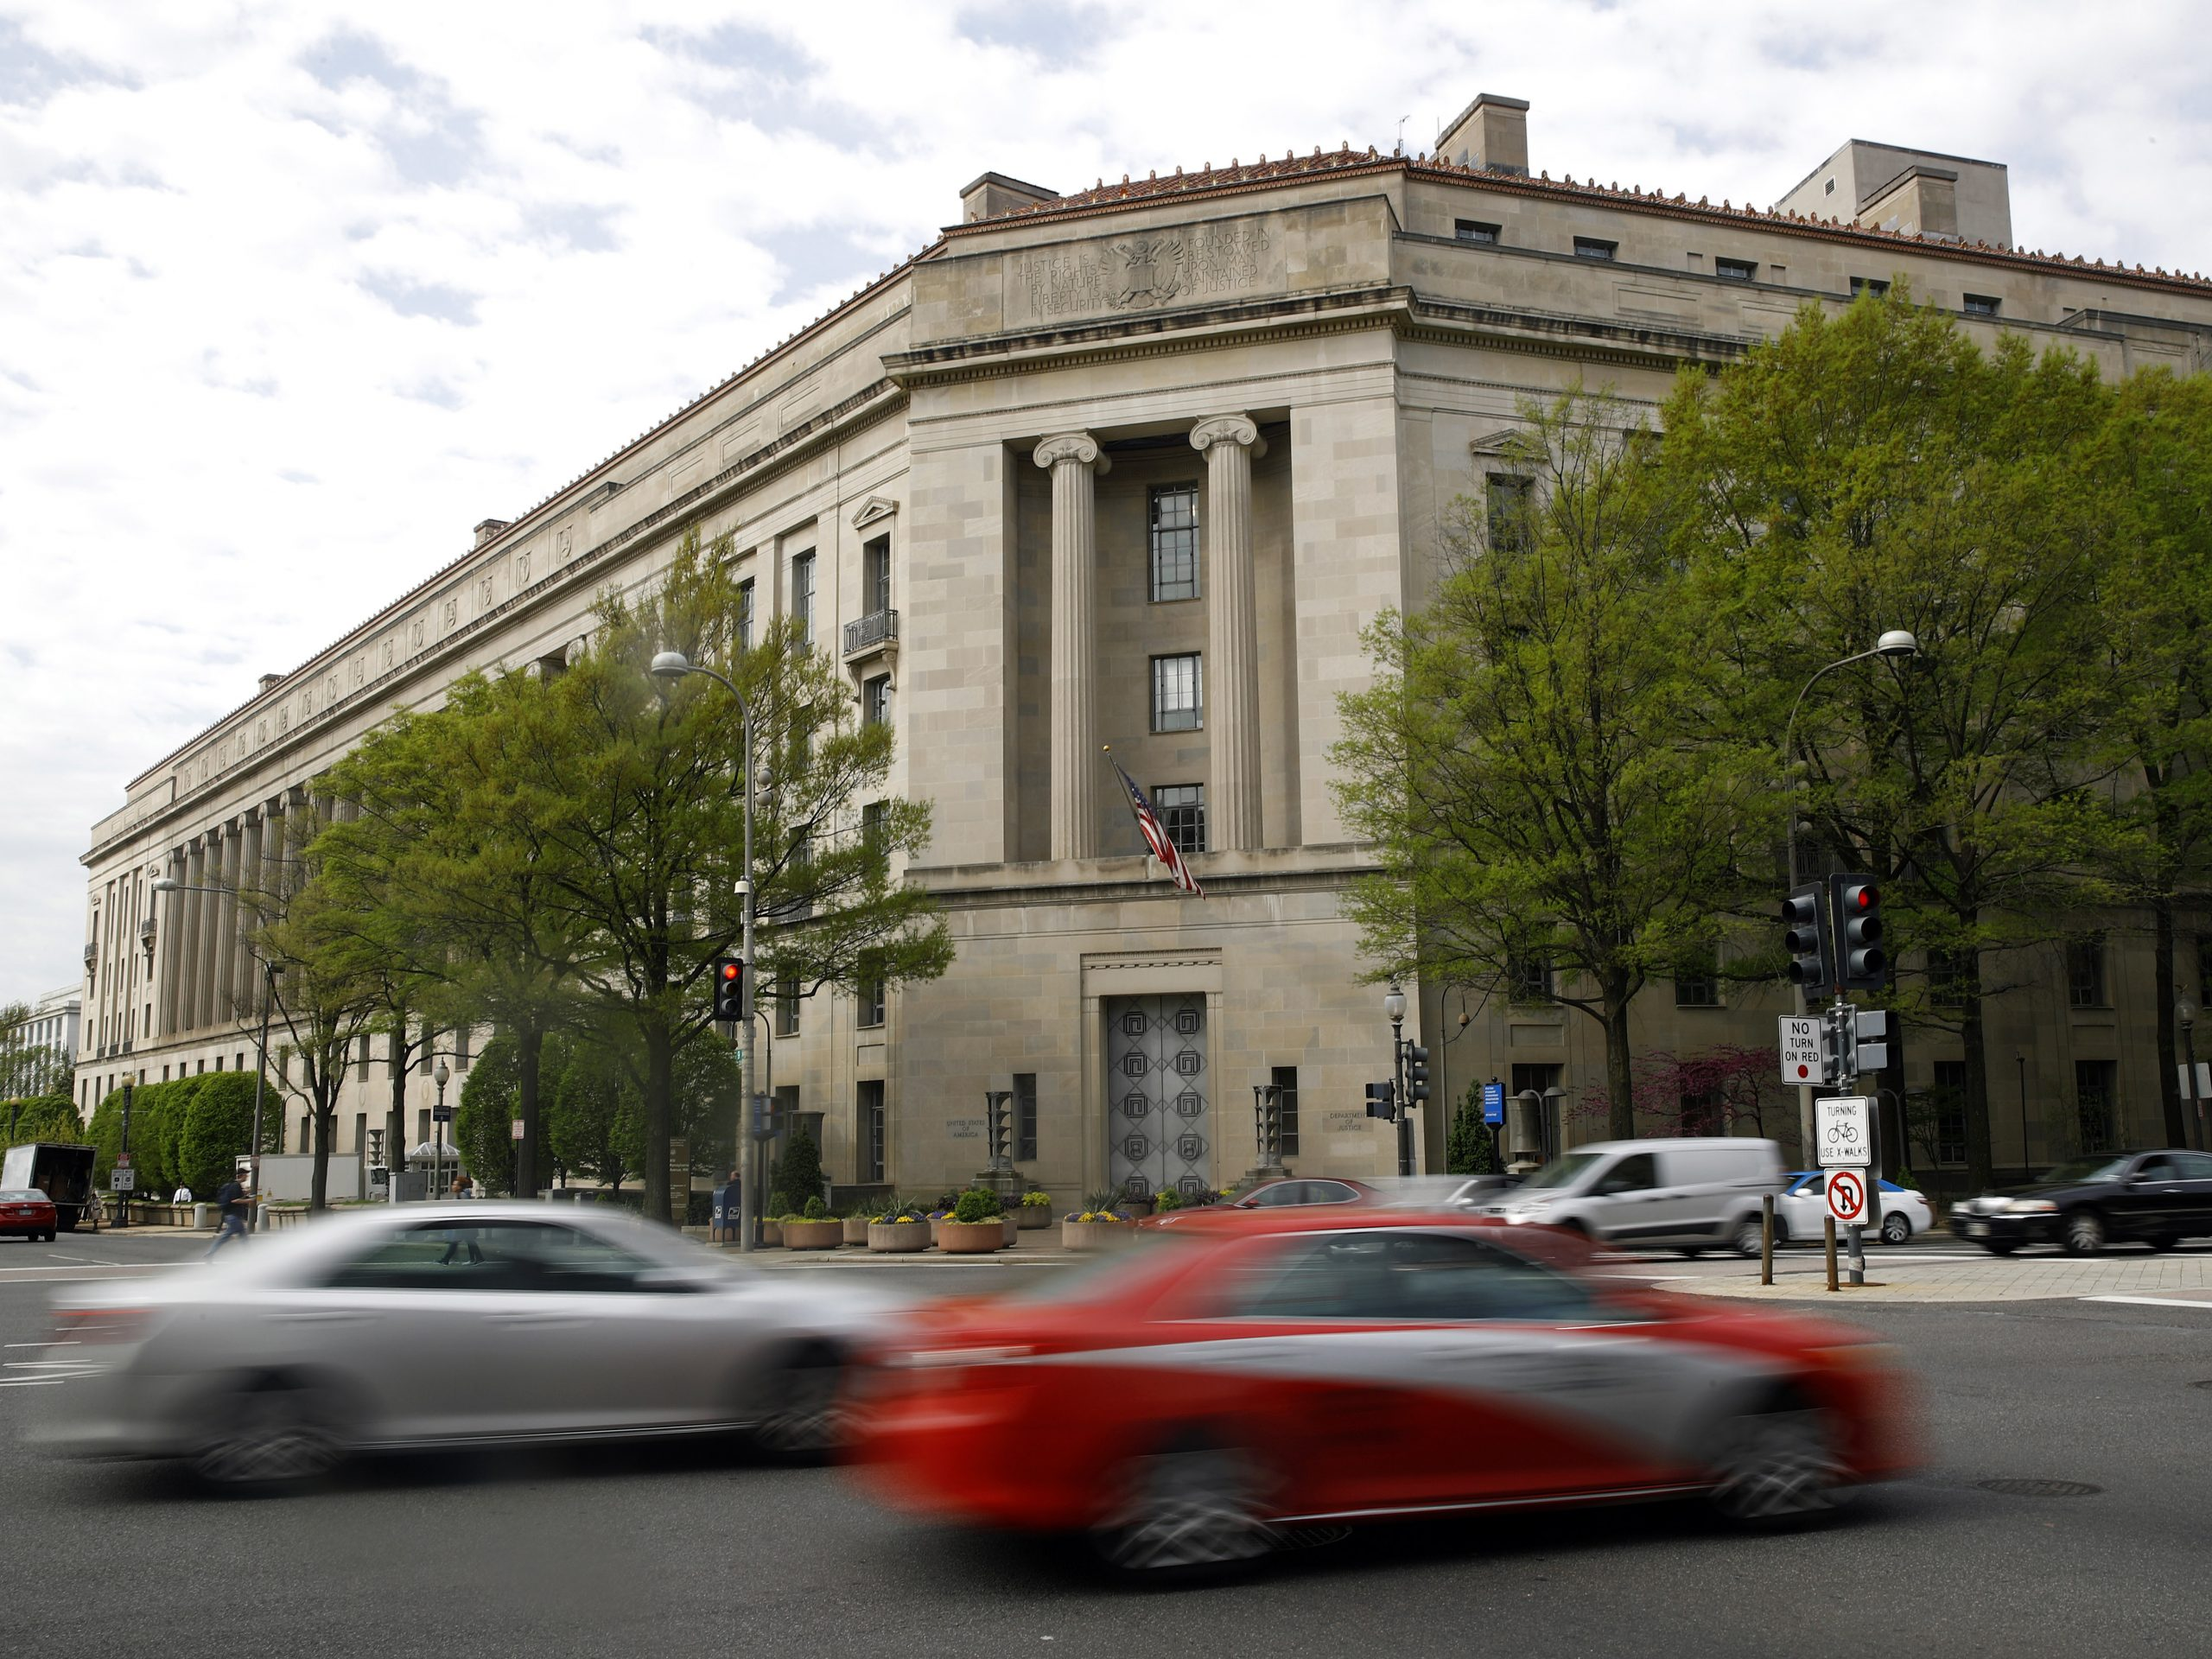 The Justice Department in Washington, D.C., is pictured in April 2019. Federal prosecutors in the Southern District of New York are moving to drop a case nearly three months after a conviction.